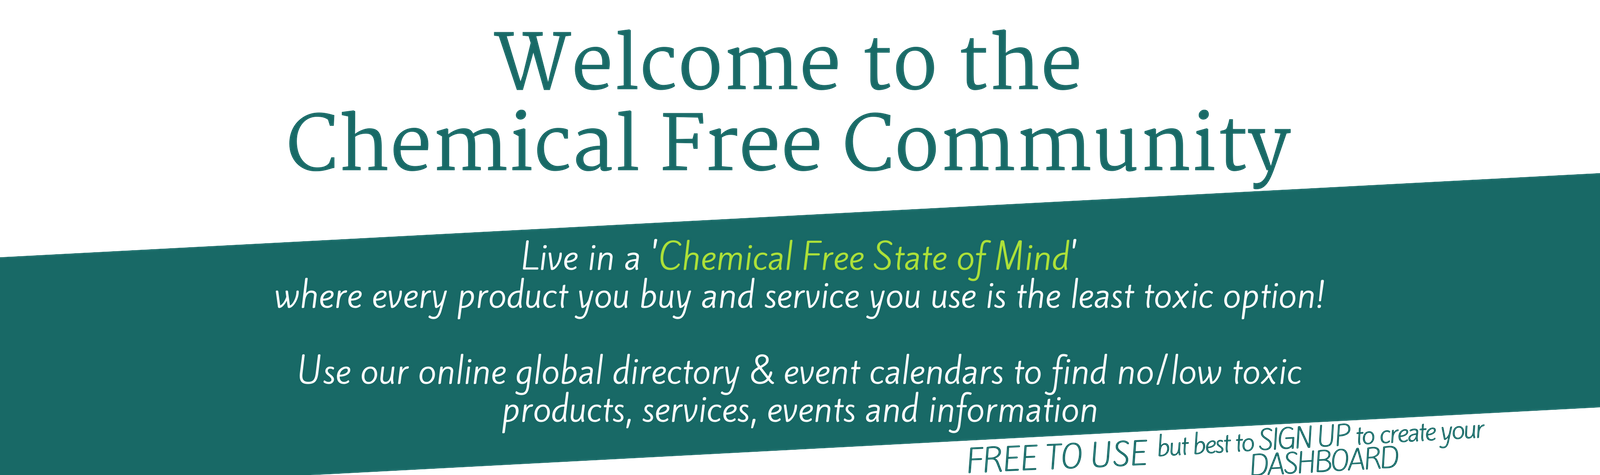 Chemical Free Community